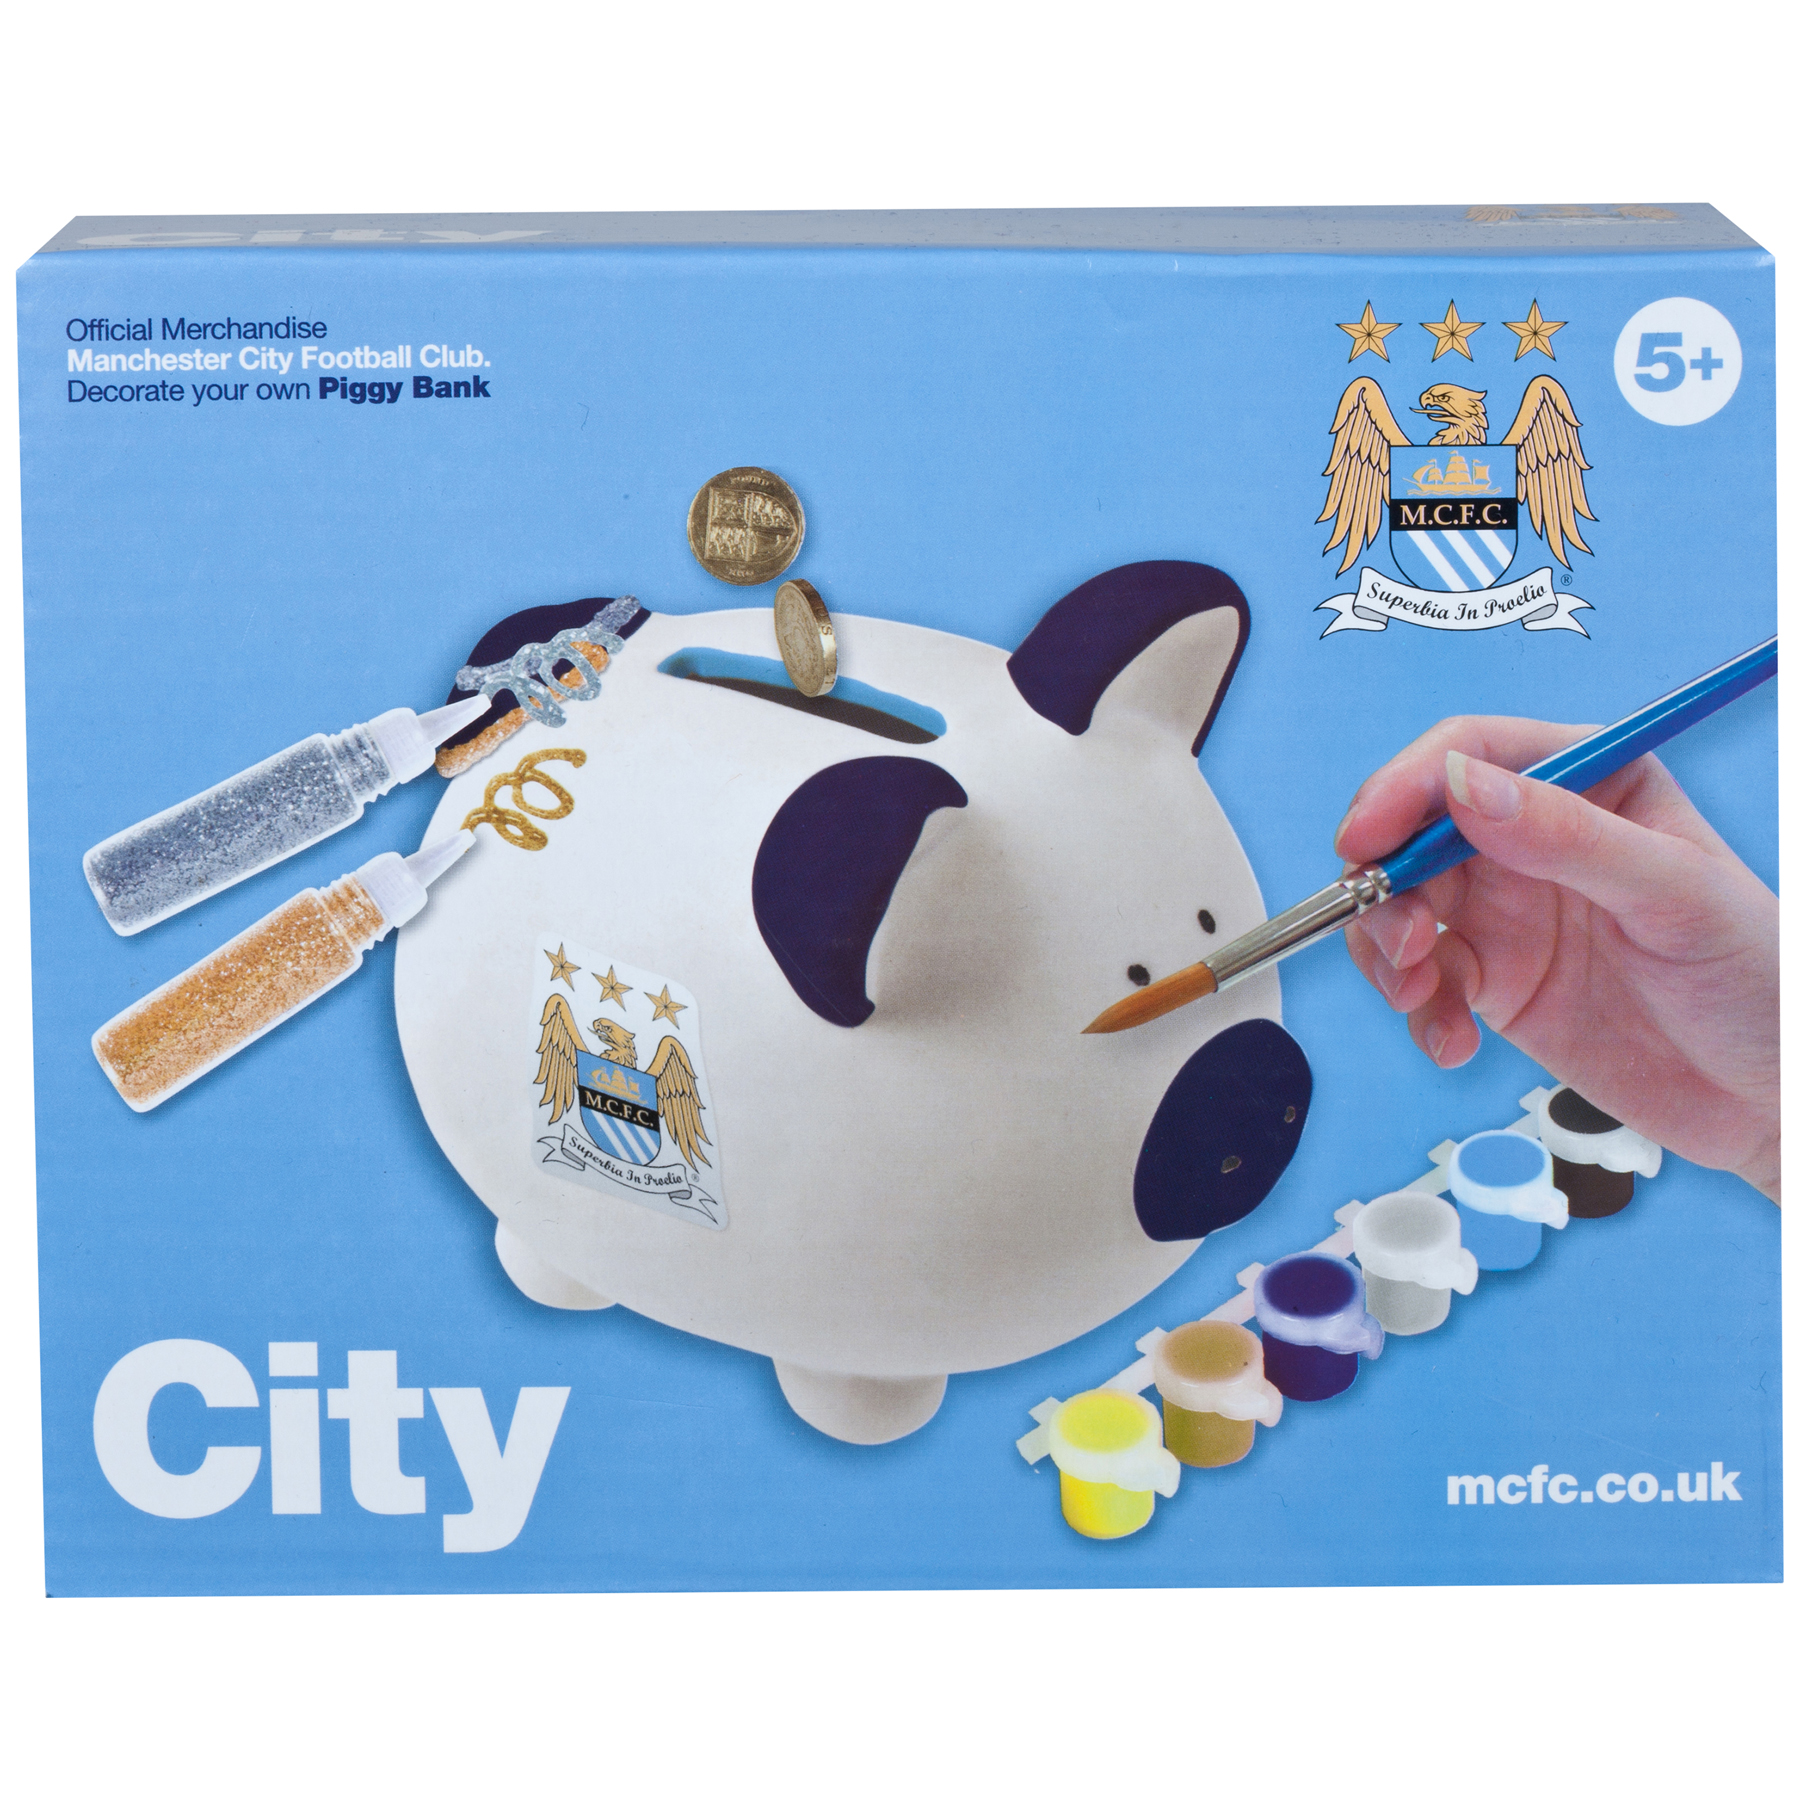 Manchester City Paint your own pig moneybox